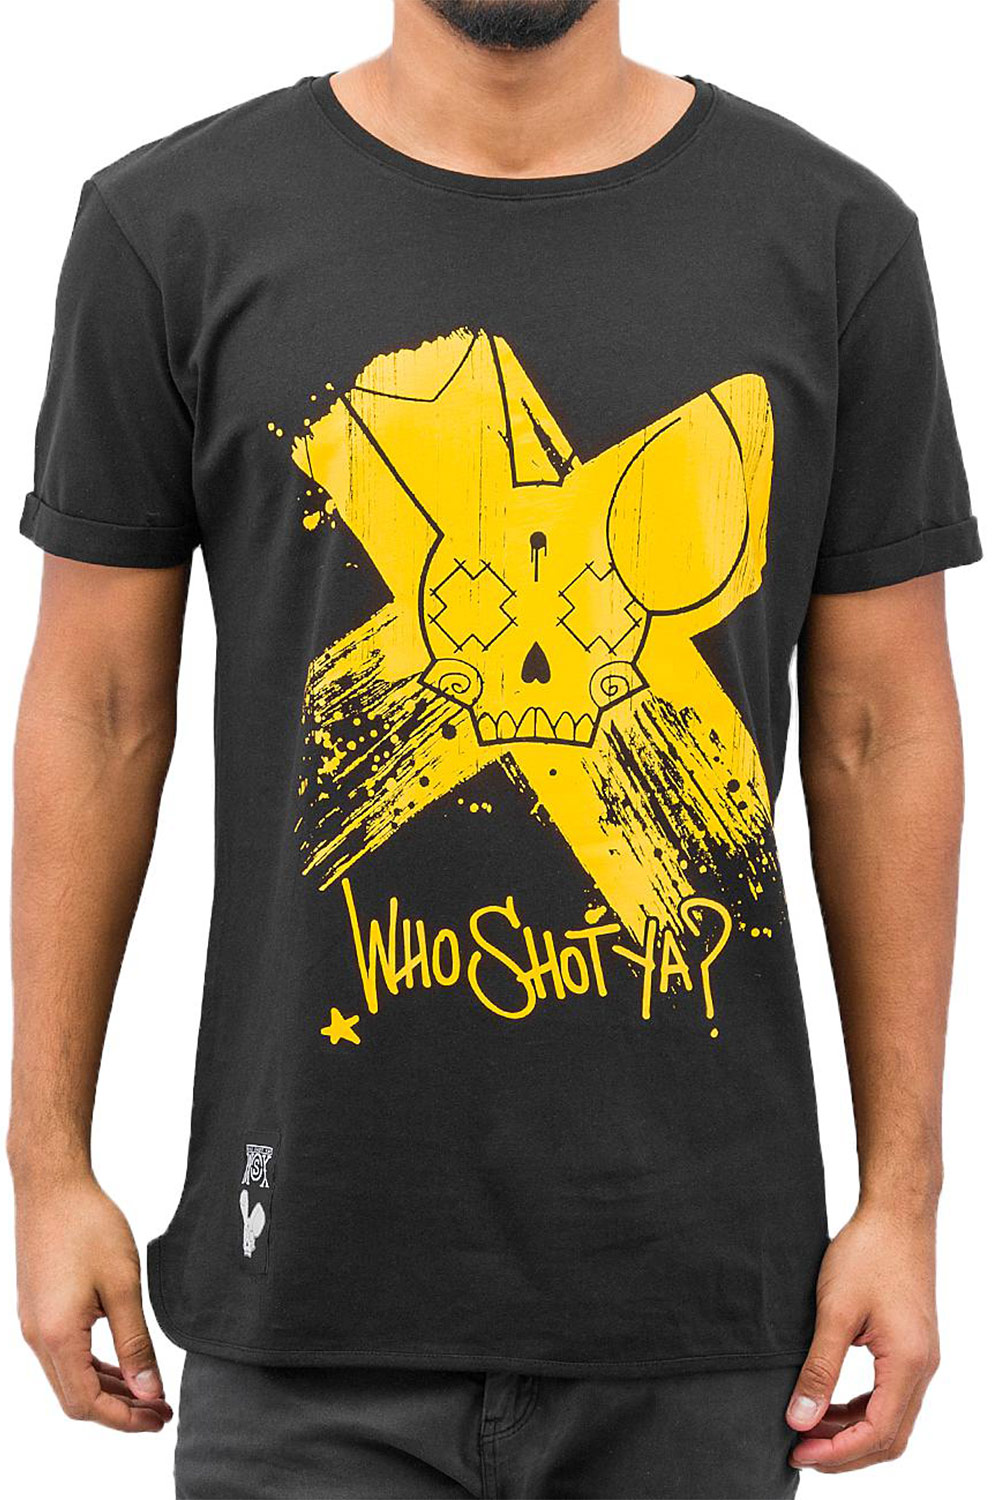 WHO SHOT YA? Cross T-Shirt Black auf oboy.de